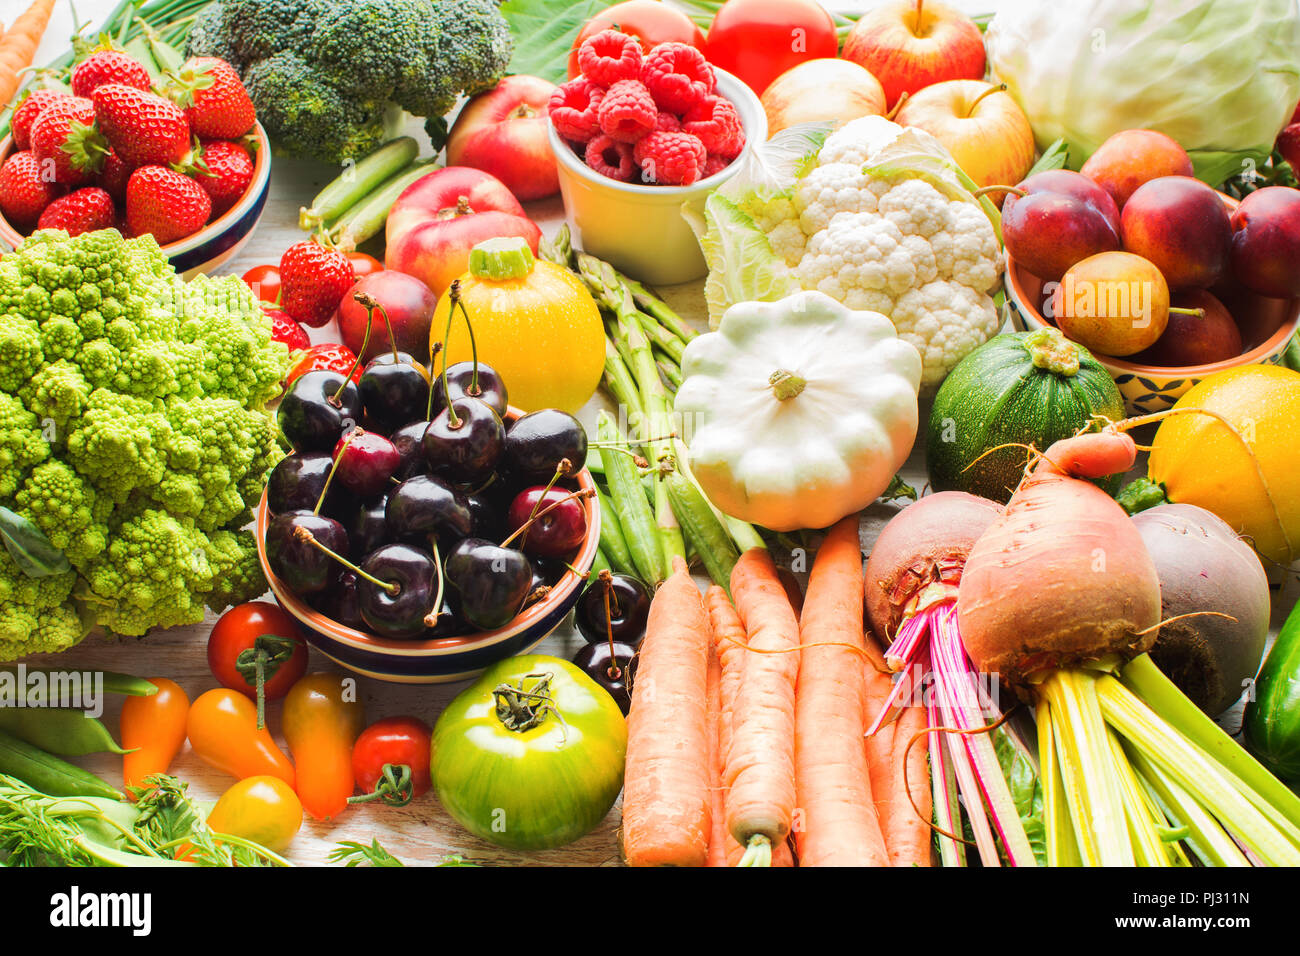 Lots of summer fruits vegetables berries, apples cherries peaches strawberries cabbage broccoli cauliflower squash tomatoes carrots spring onions beans beetroot, selective focus - Stock Image